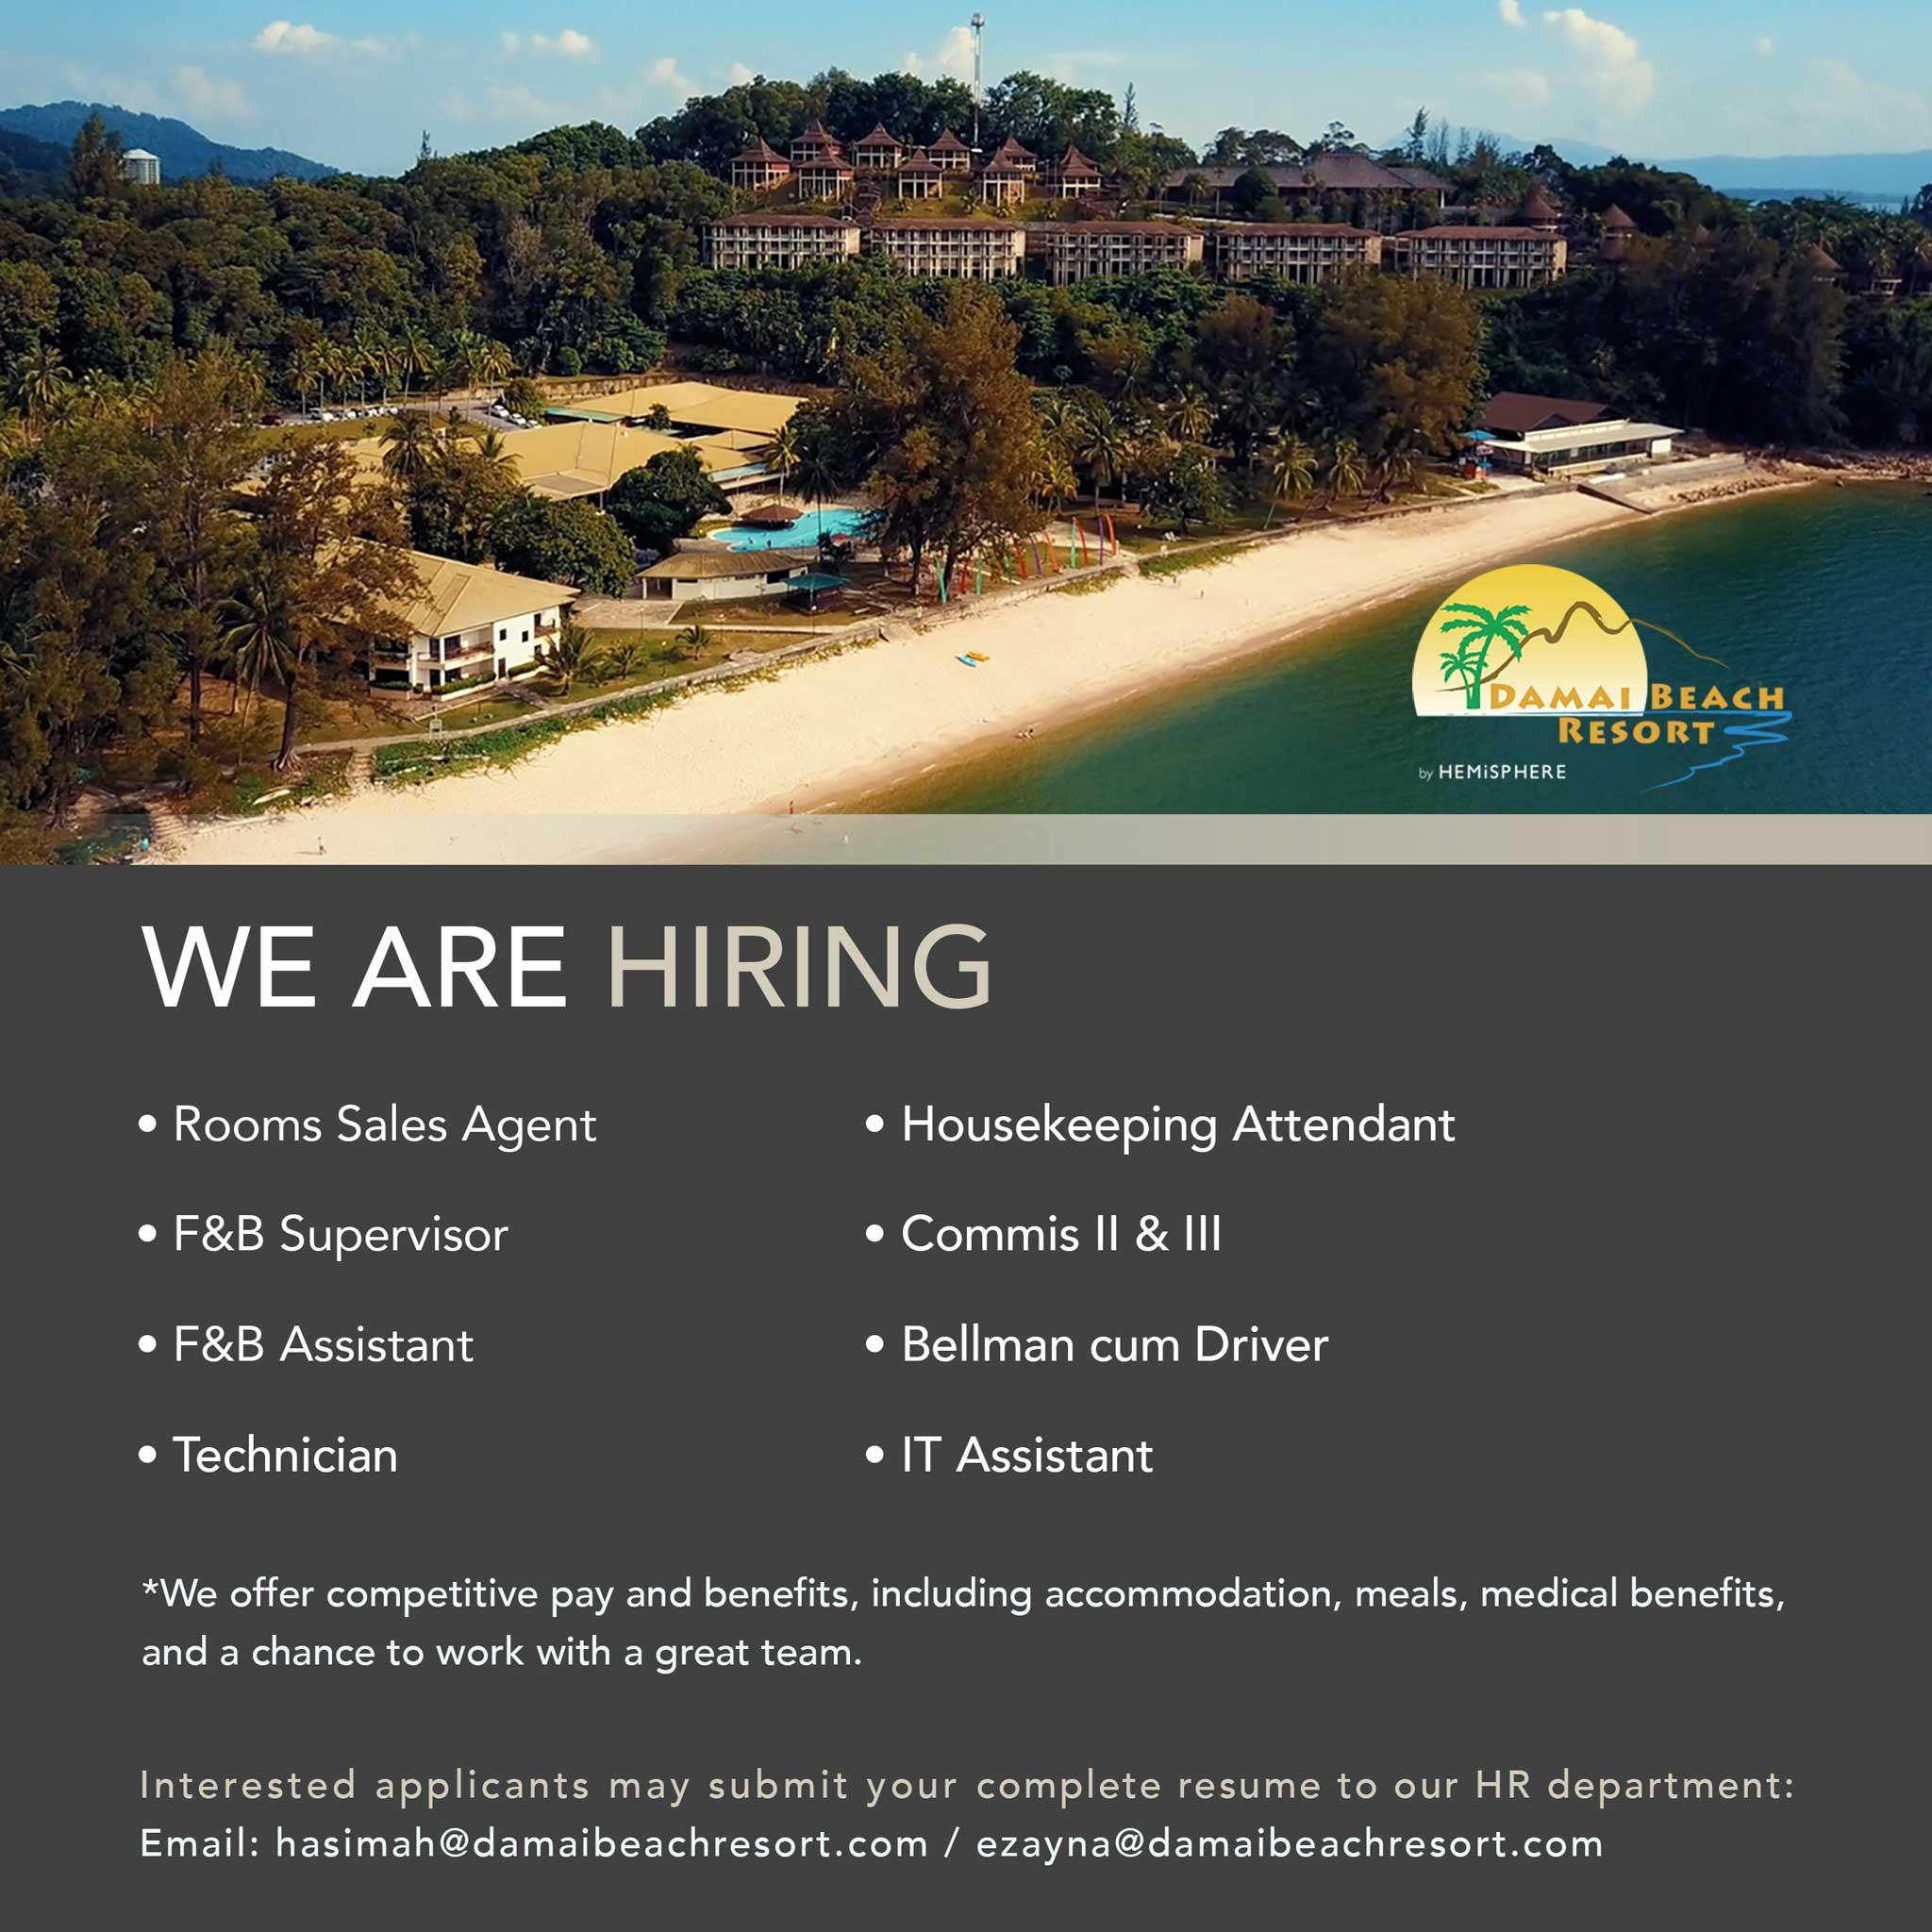 Damai Beach Resort Careers